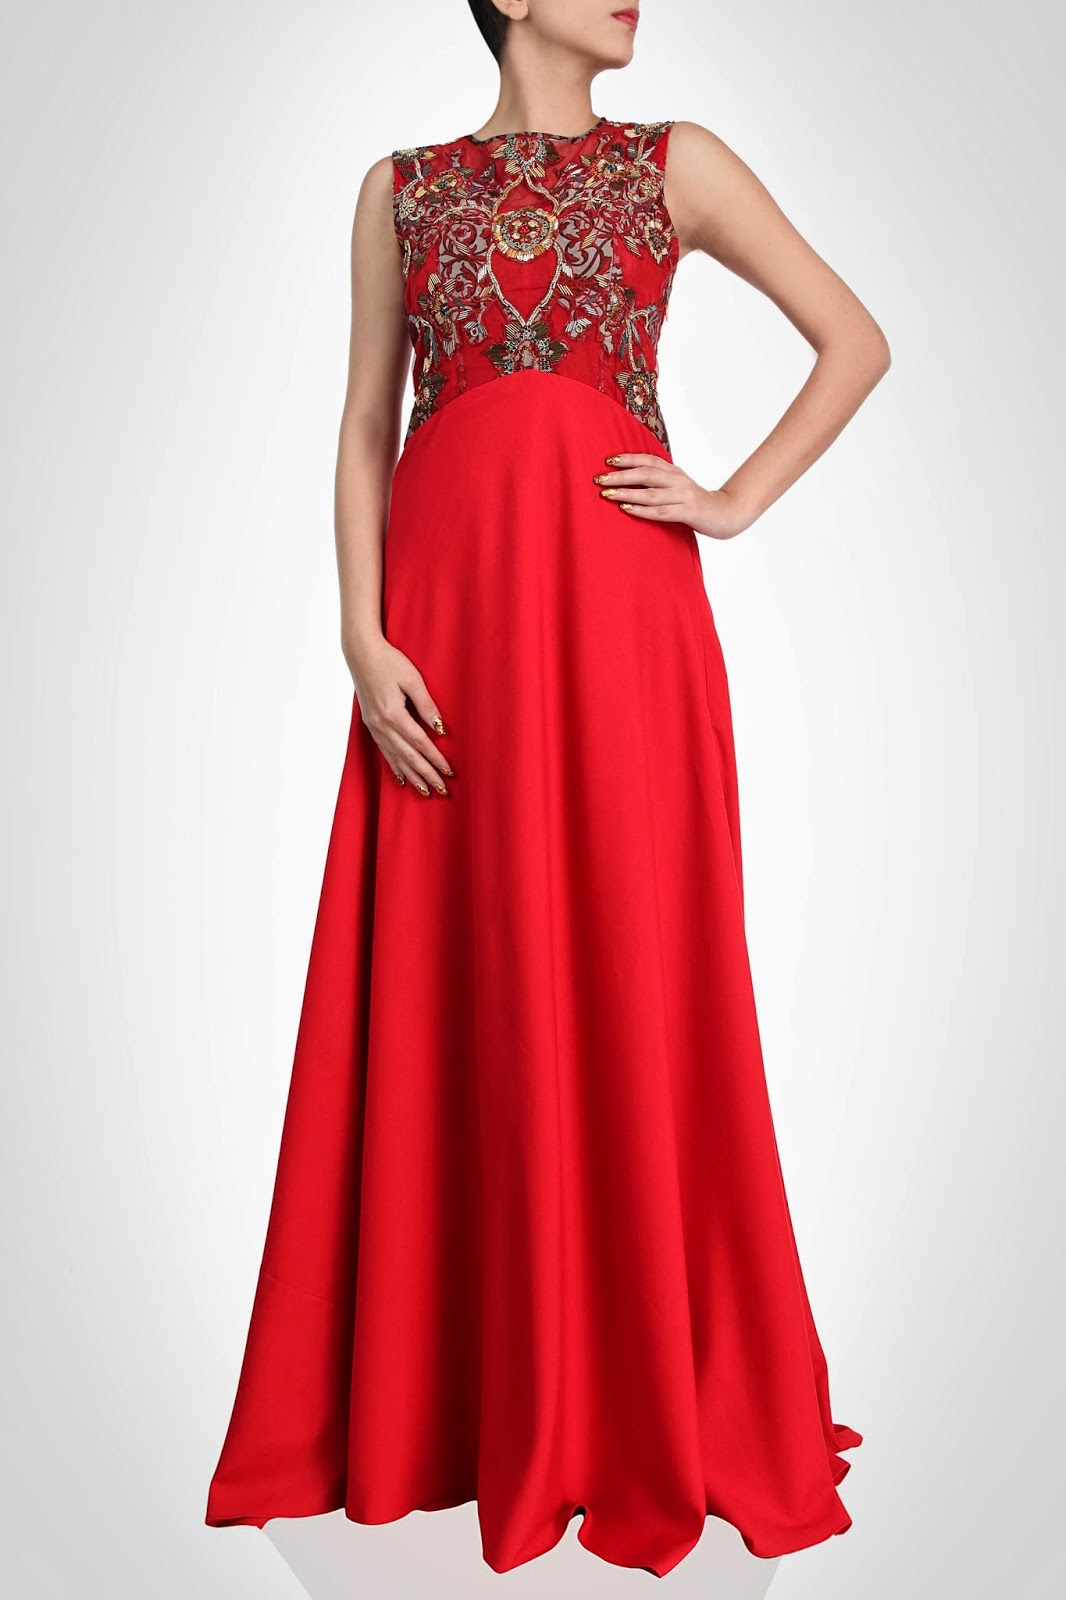 New collection of designers indian style maxi dresses 2014 Latest fashion gown style